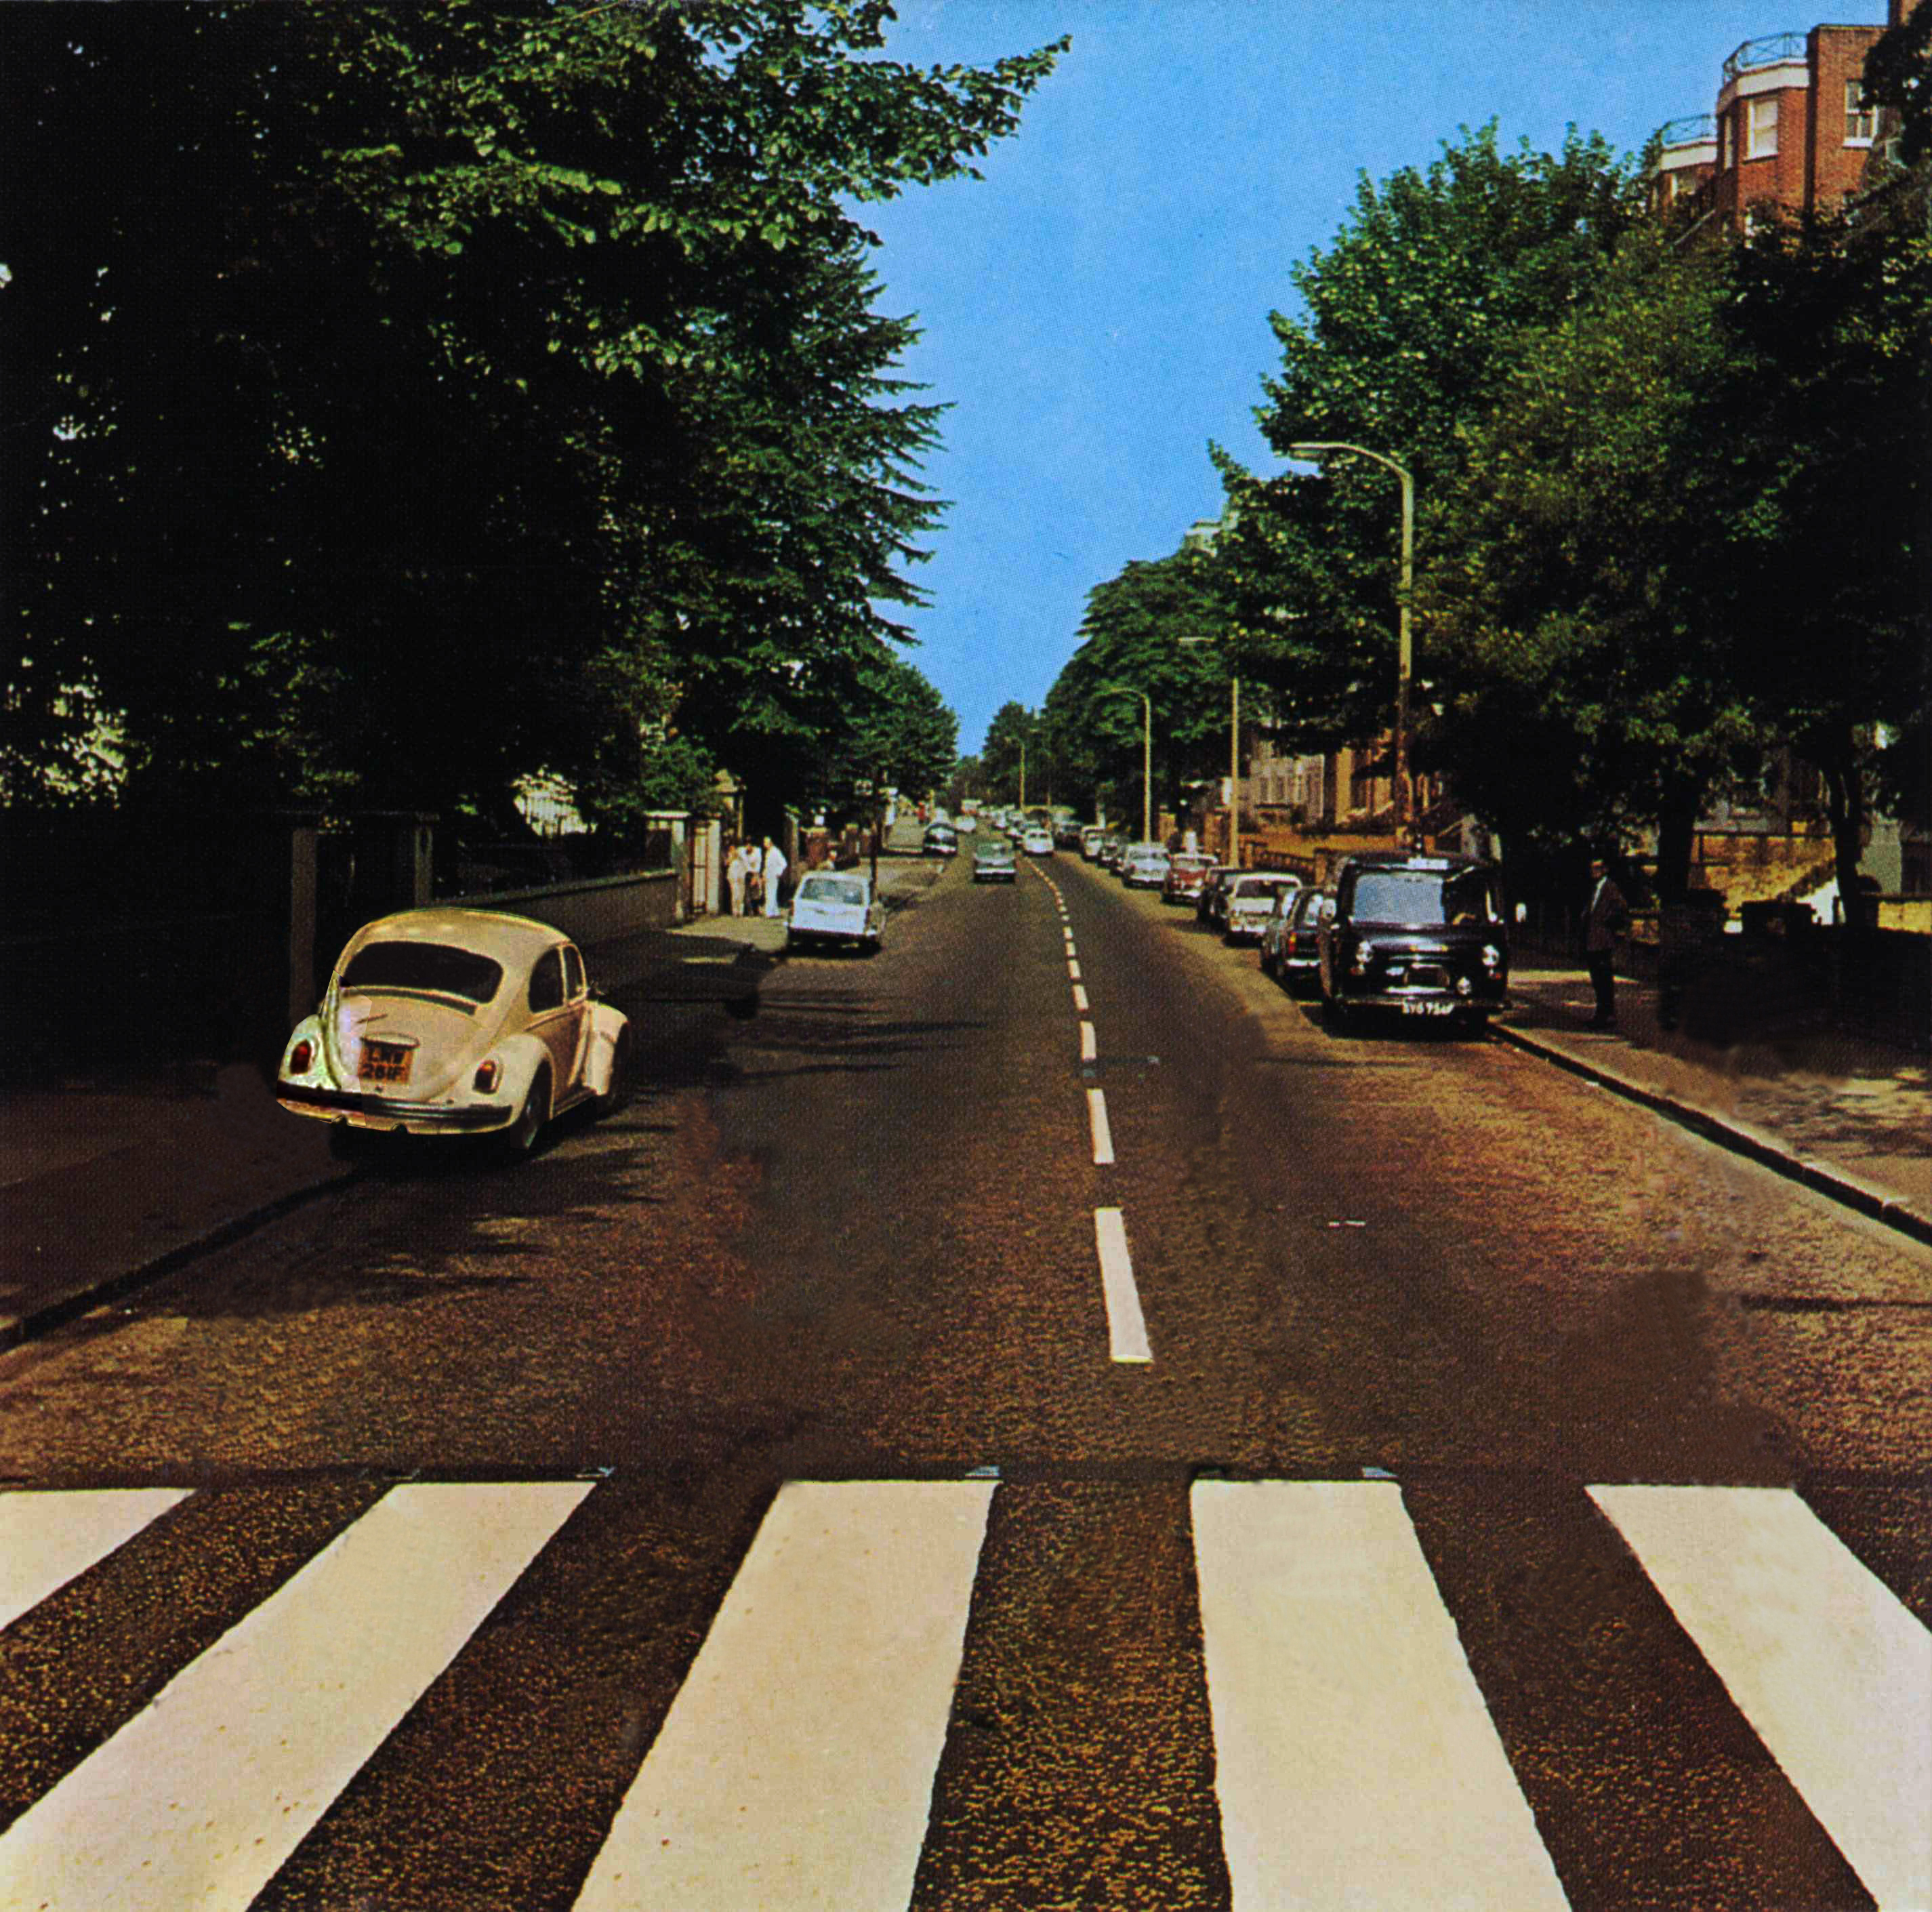 Abbey Road Without Beatles By Rasboi On Deviantart